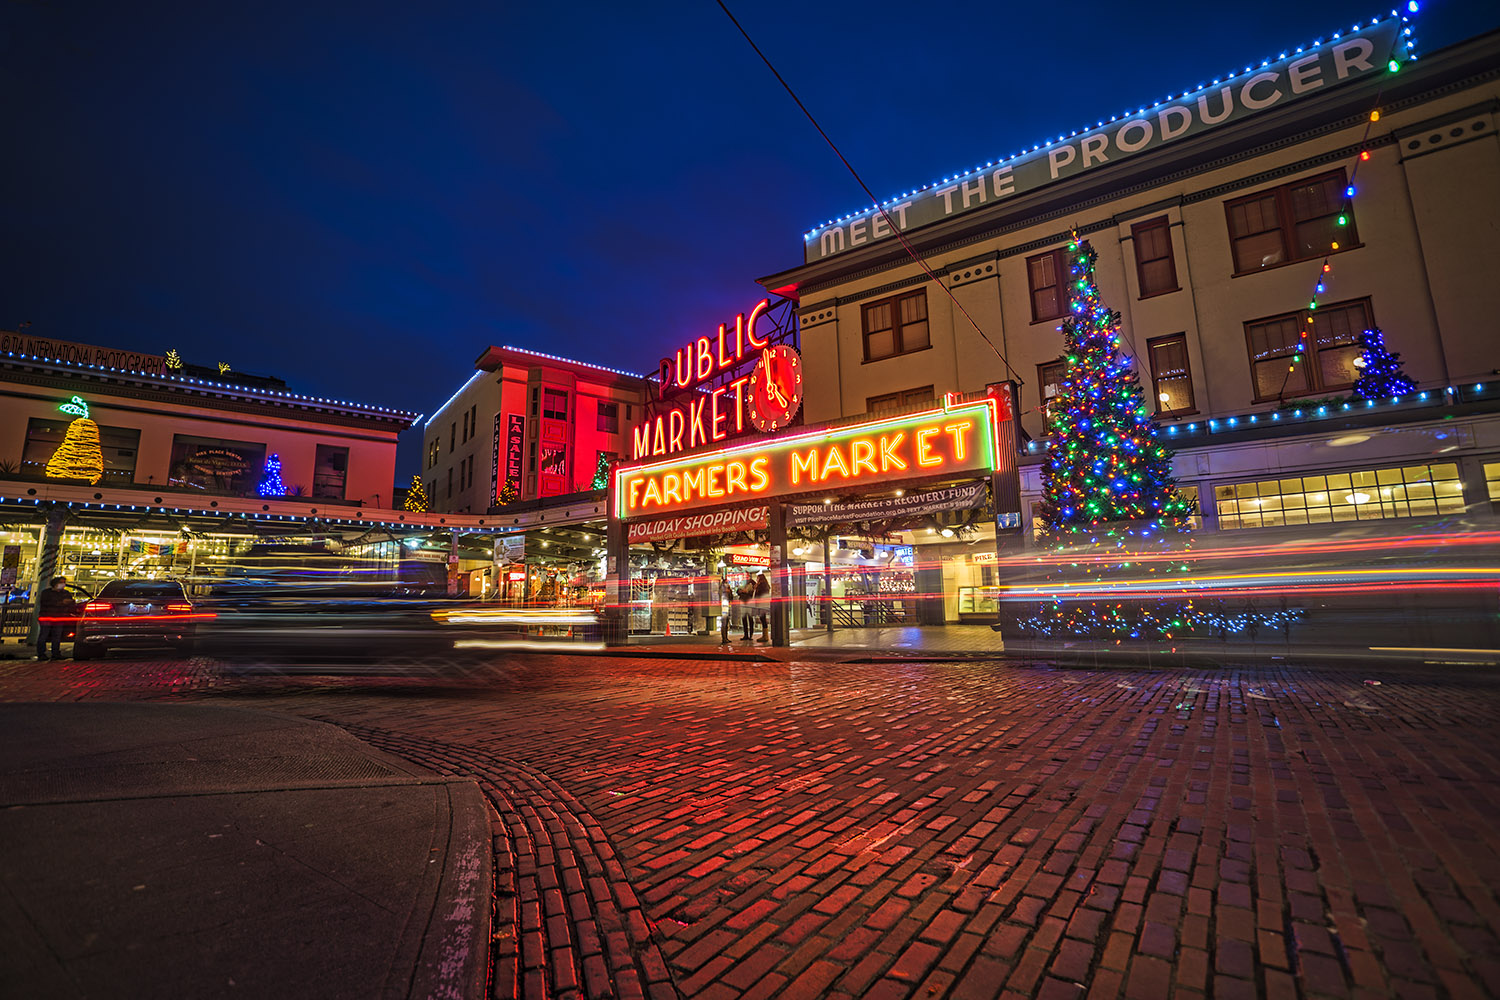 Pike Place Market during the holiday season. Downtown Seattle. (December 18, 2020)